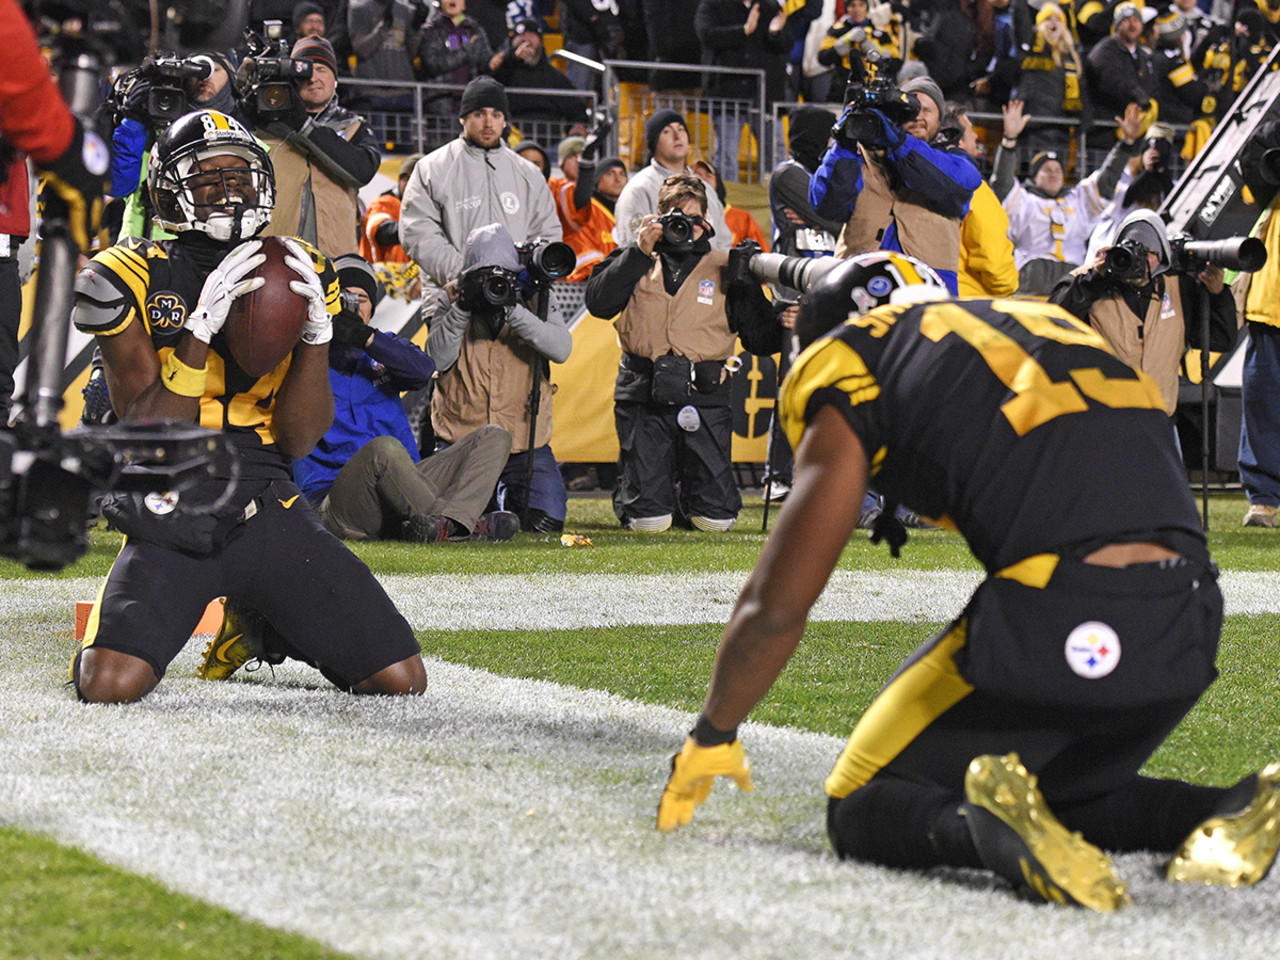 Pittsburgh Steelers wide receivers Antonio Brown and JuJu Smith-Schuster combined for the most receiving yards by a wide receiver duo in 2017 (2,450).